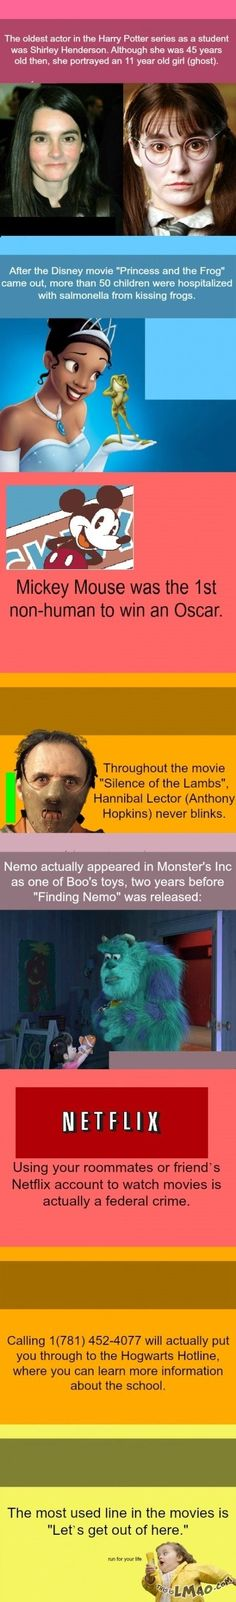 LMAO!!! Some useless movie facts